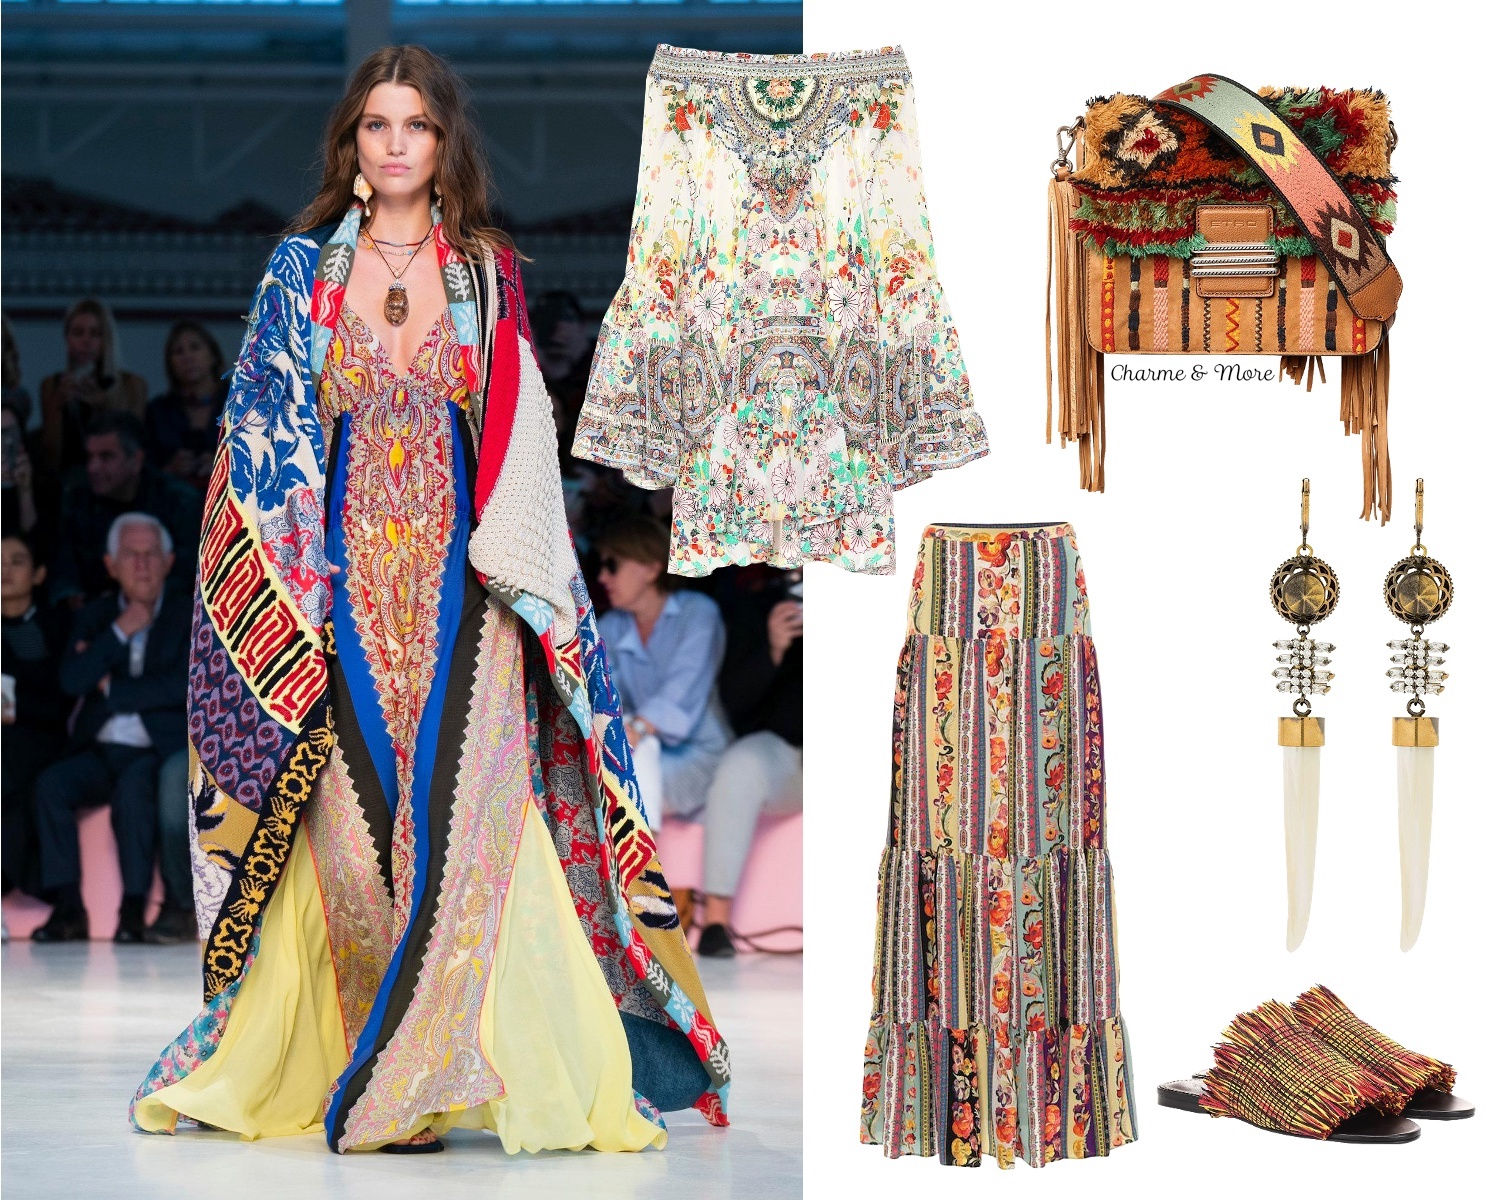 0d91c261f894 Boho-chic Archivi - Charme and More